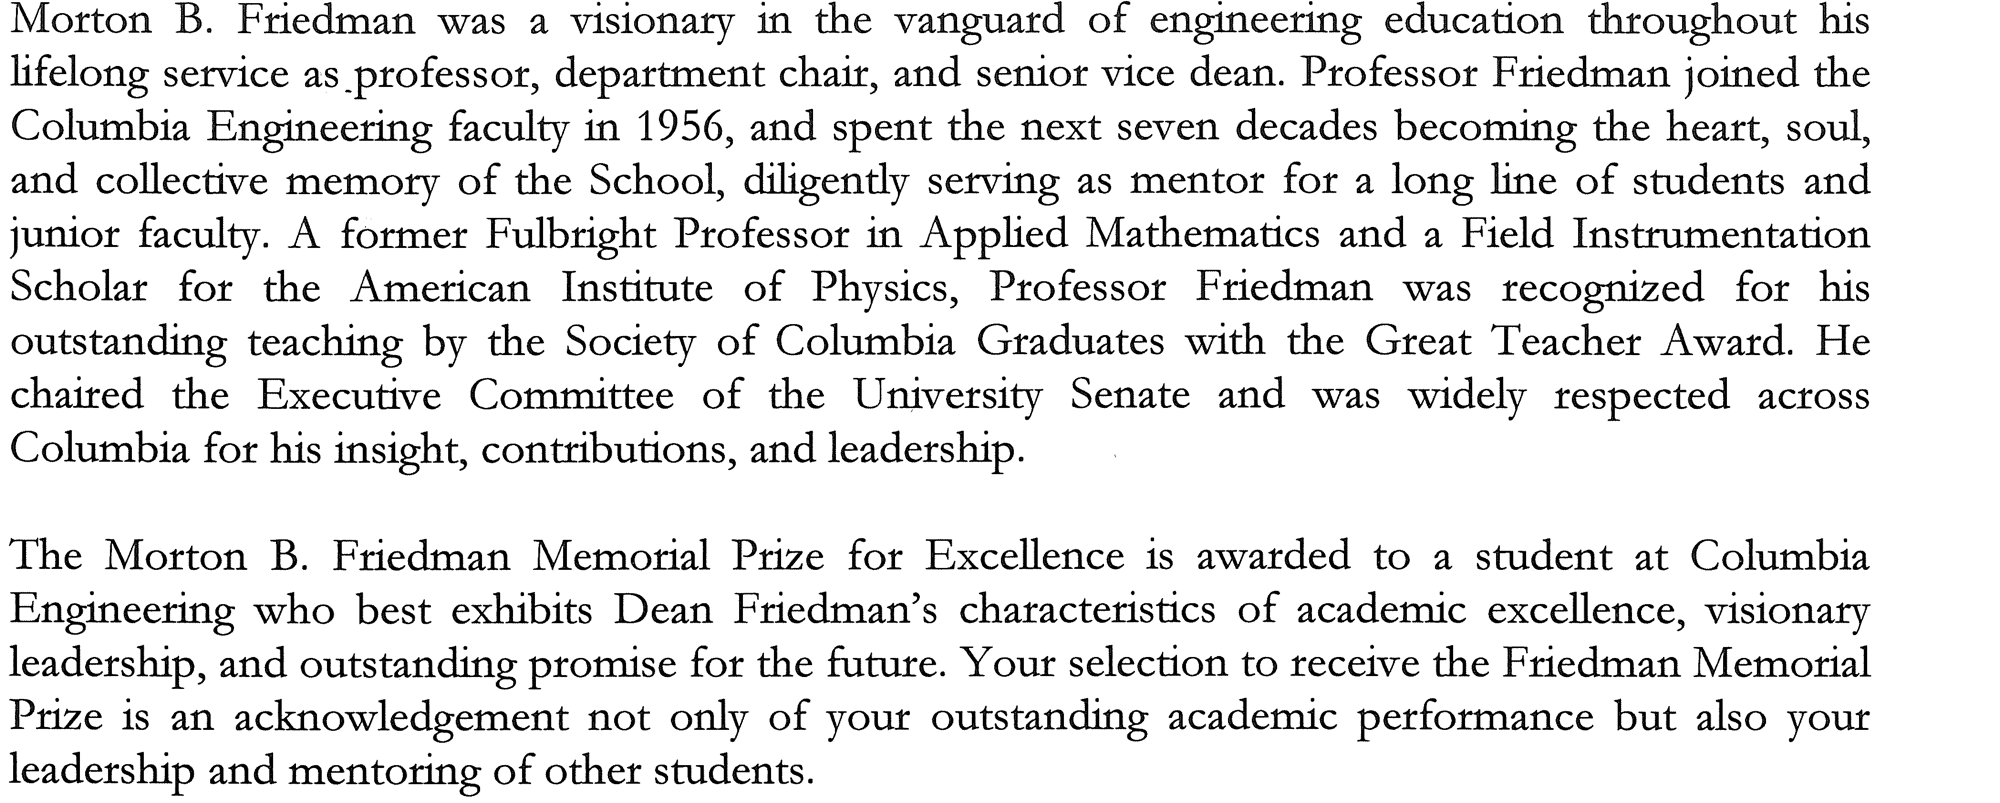 M. B. Friedman Prize description